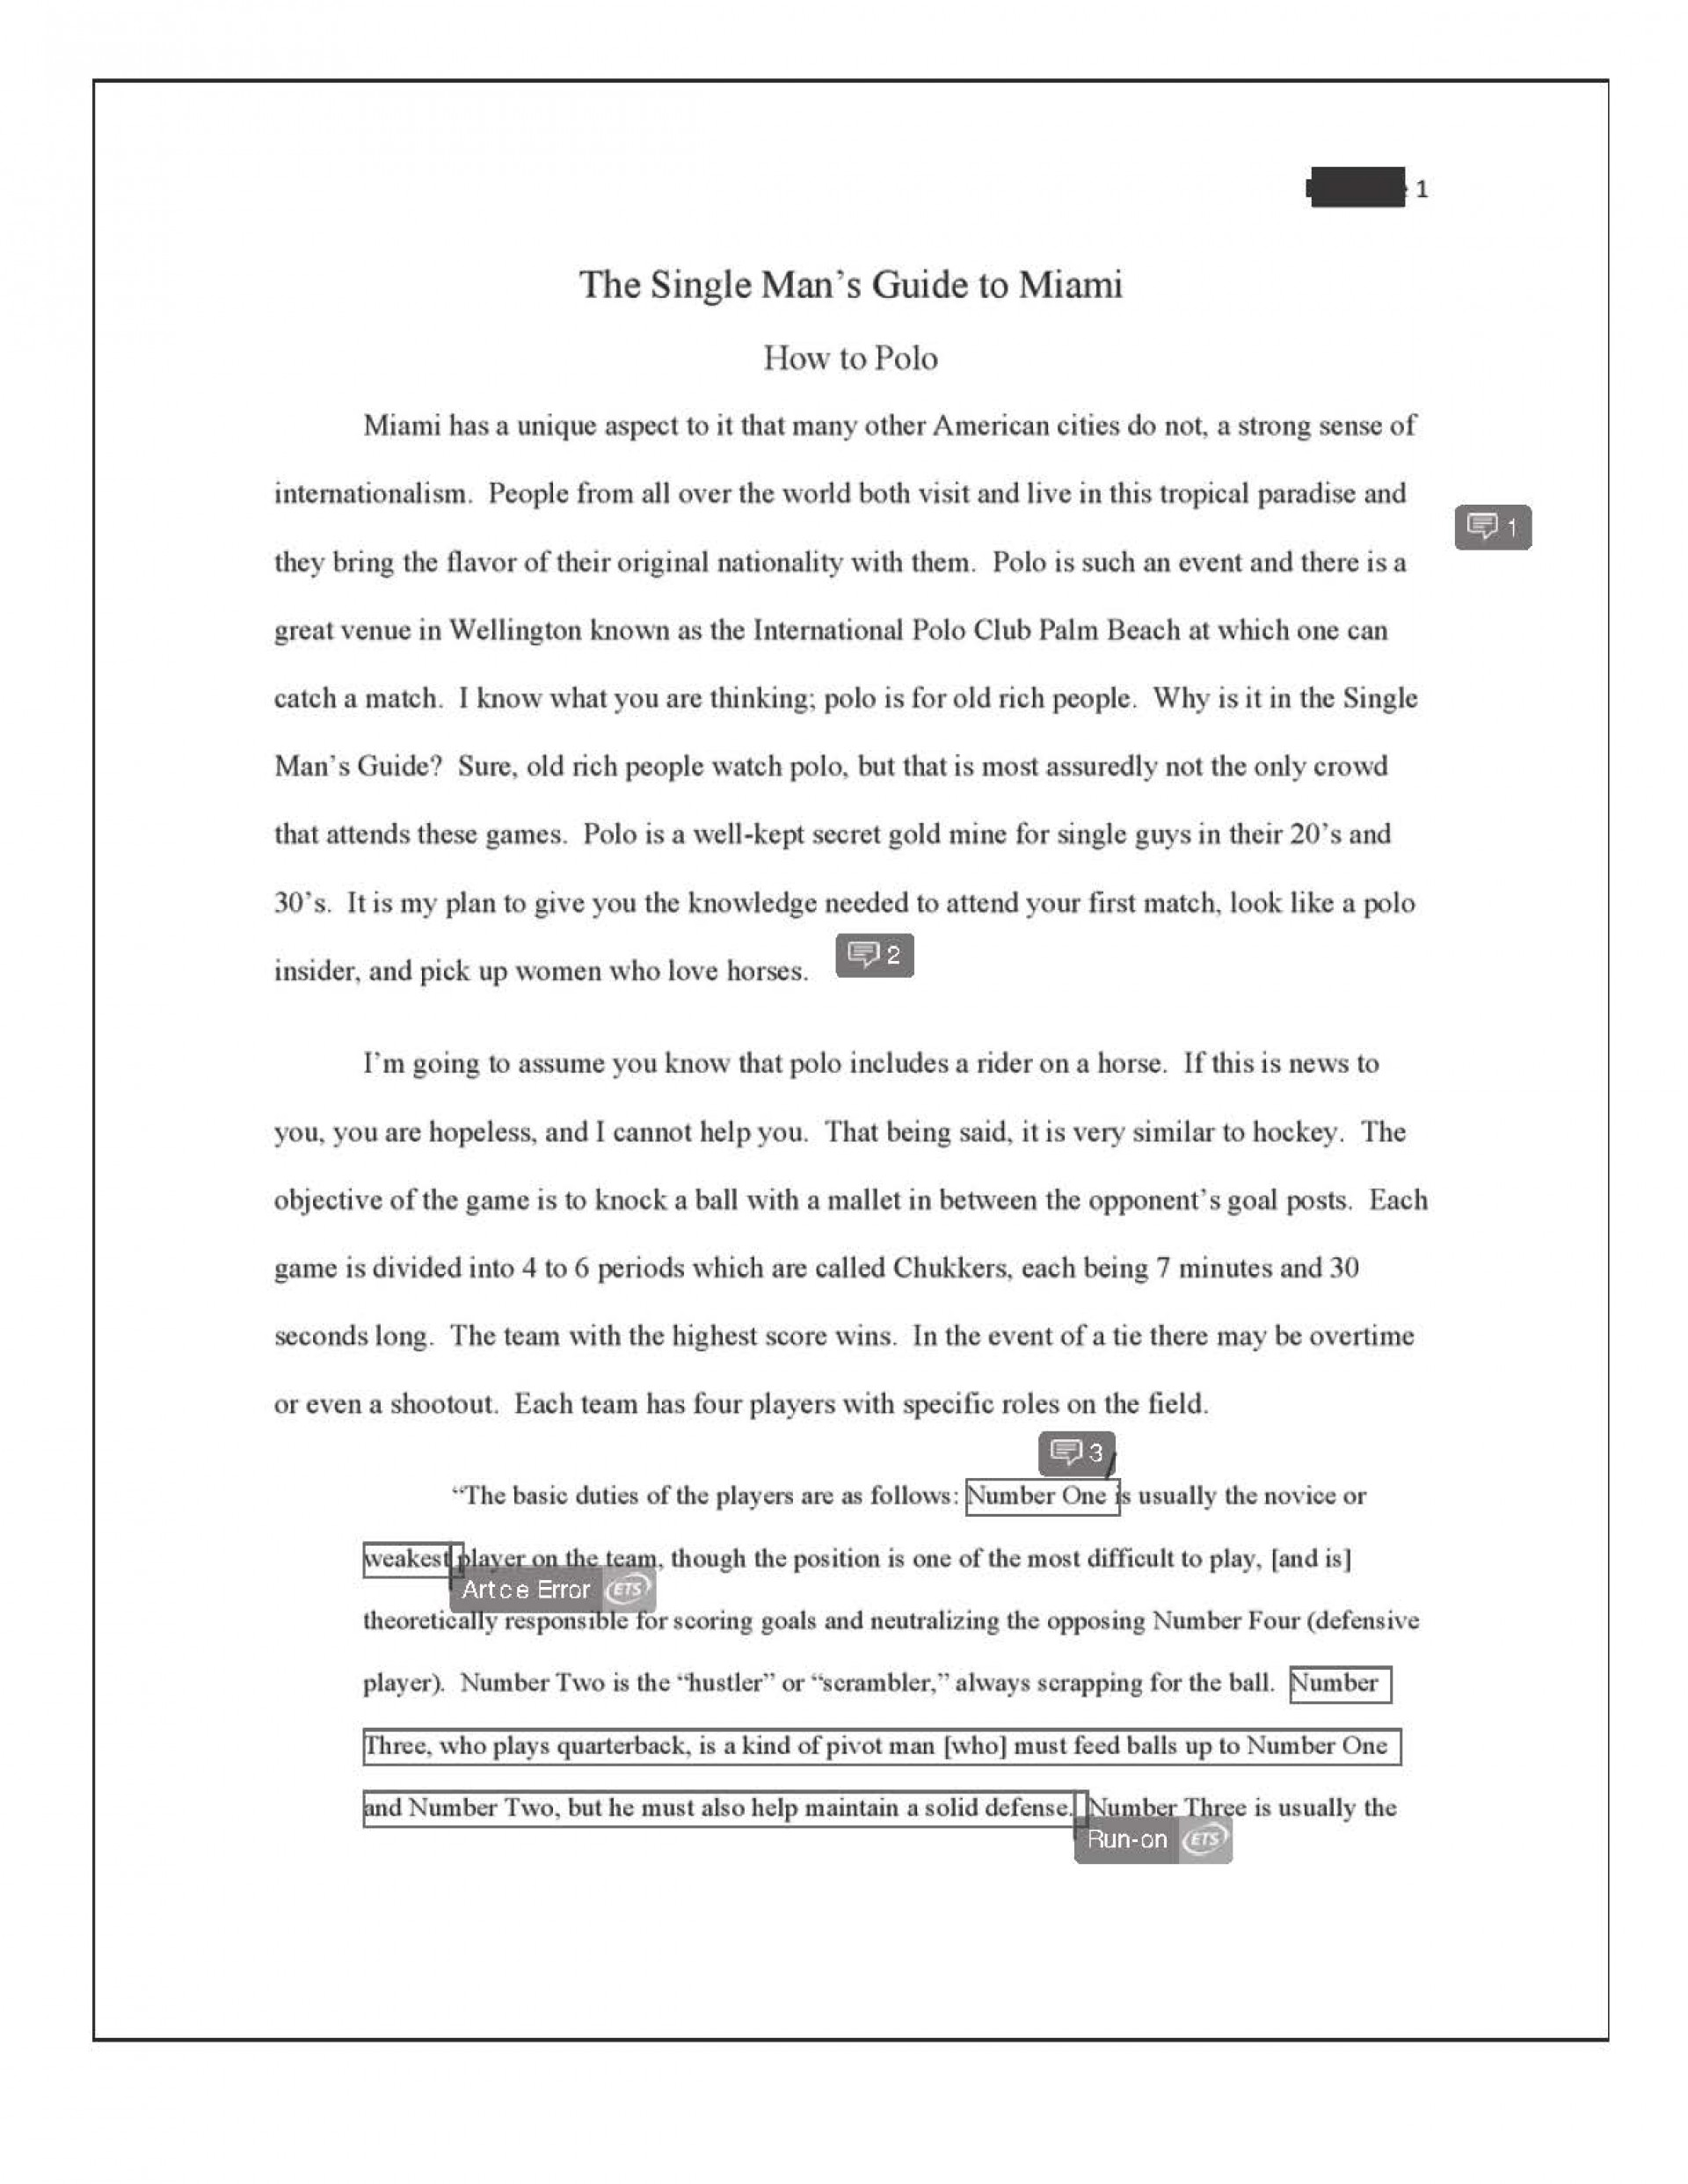 010 American Dream Argumentative Essay The Essays Is Gatsby Great What Still Alive Informative Final How To Polo Redacted P Attainable Argument Prompt Topics Marvelous Examples 1920